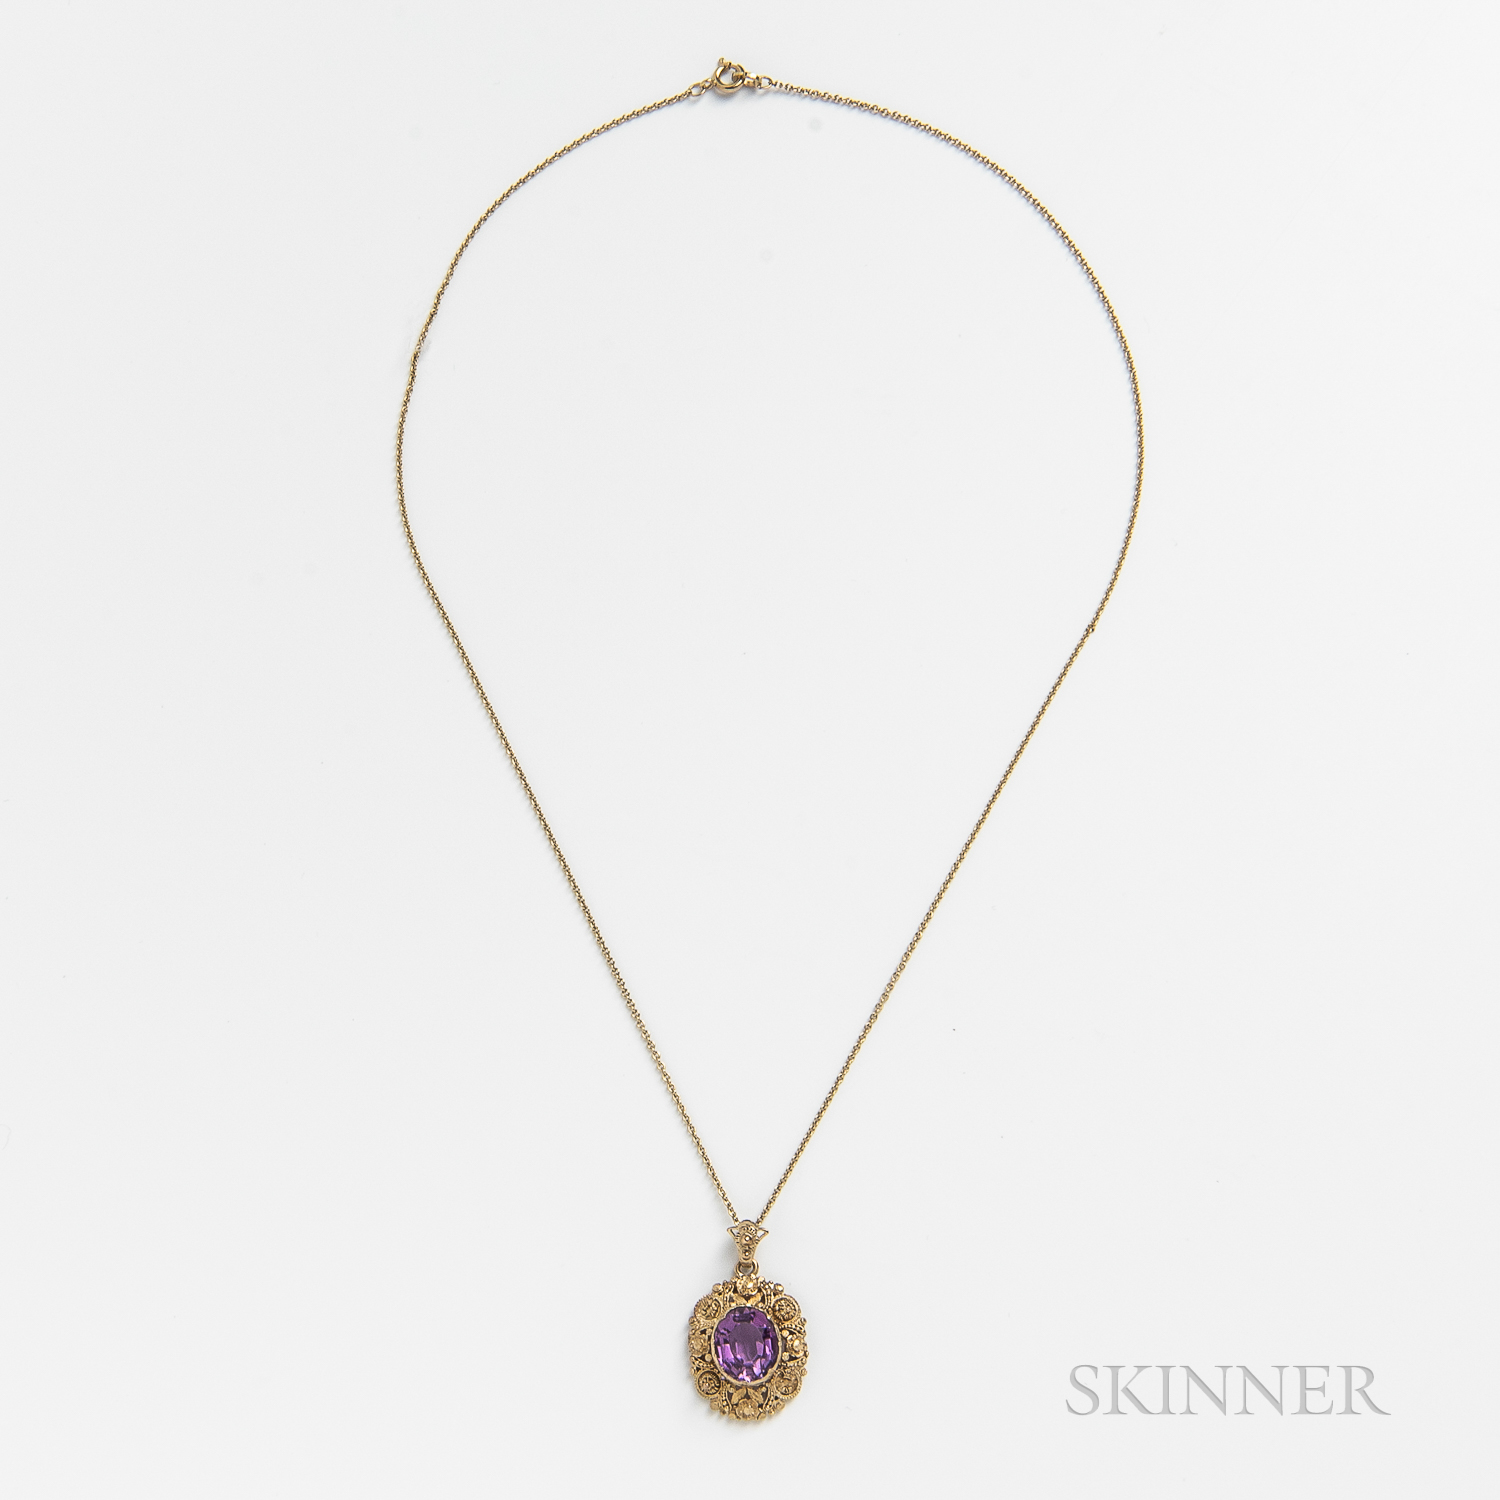 Antique 18kt Gold and Amethyst Pendant